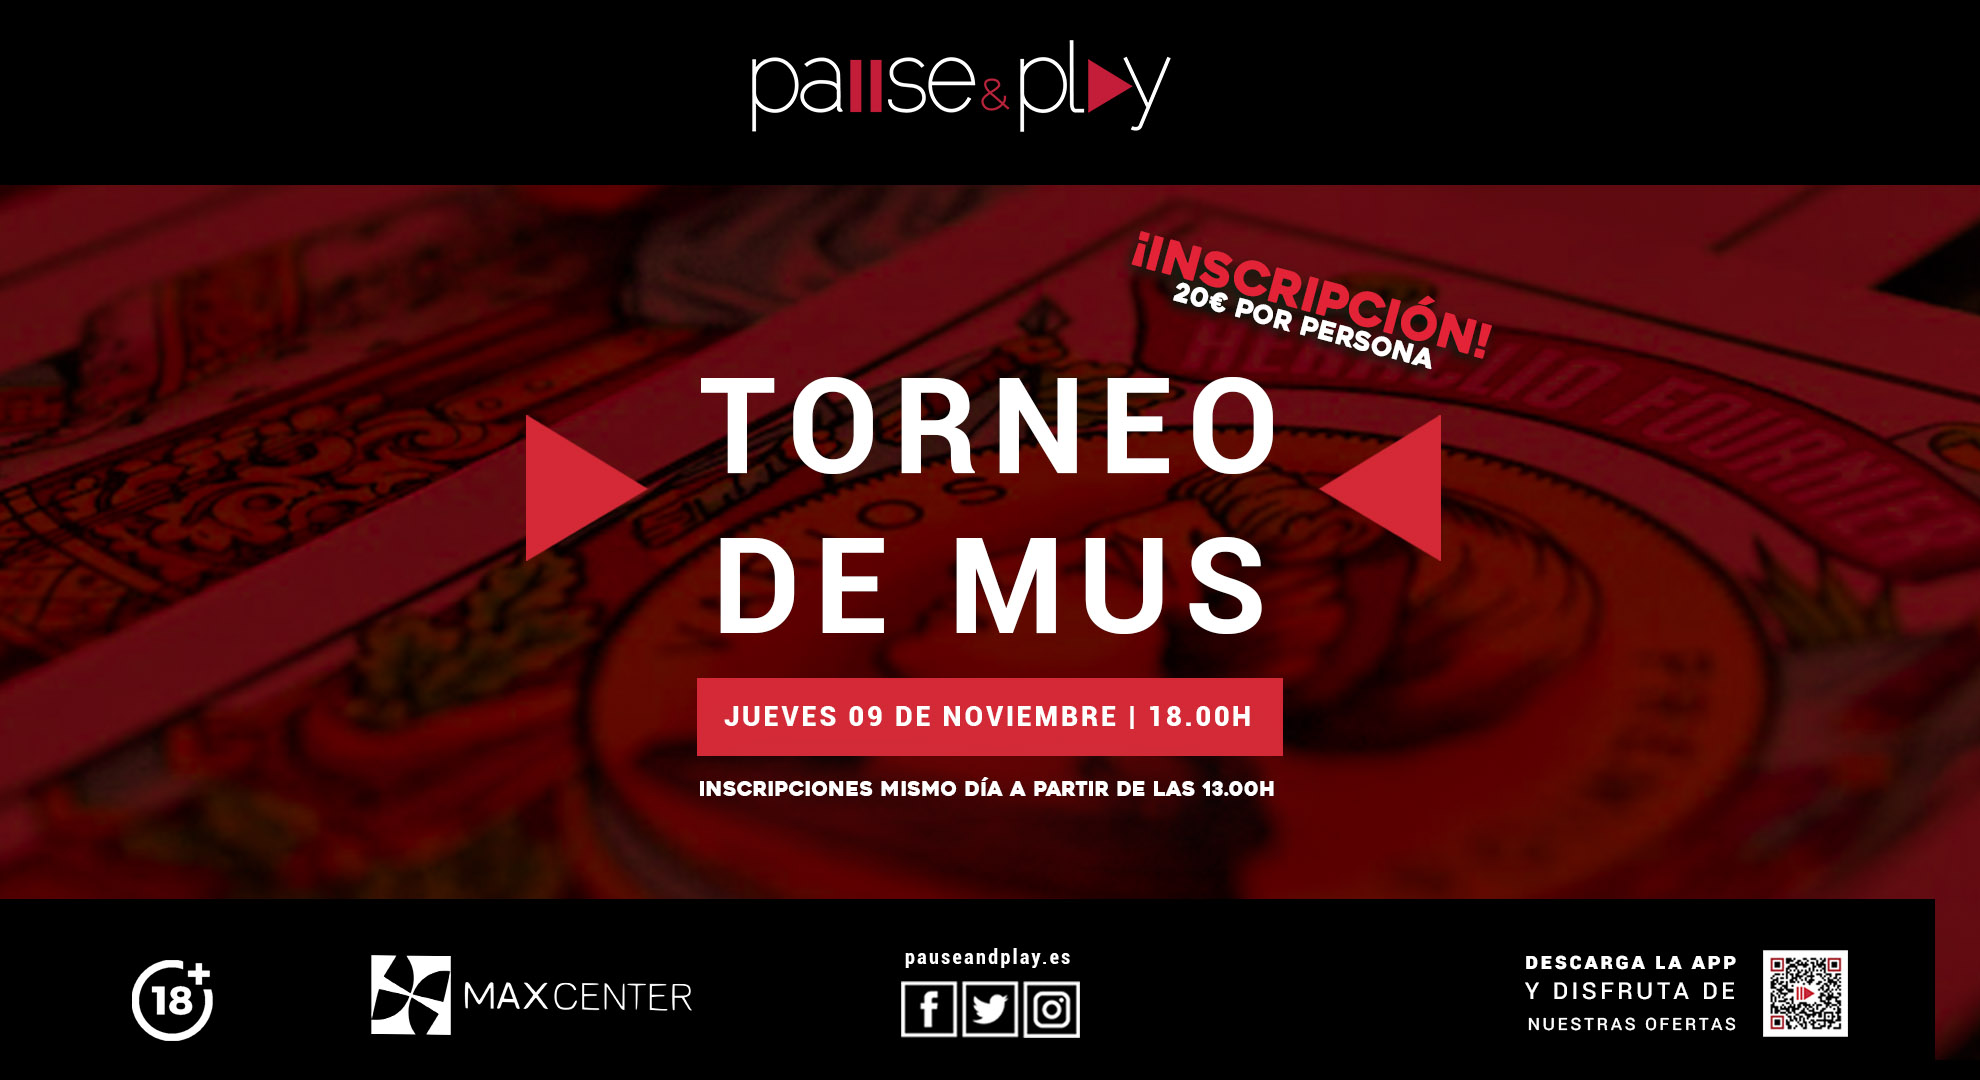 PAUSE&PLAY MAXCENTER